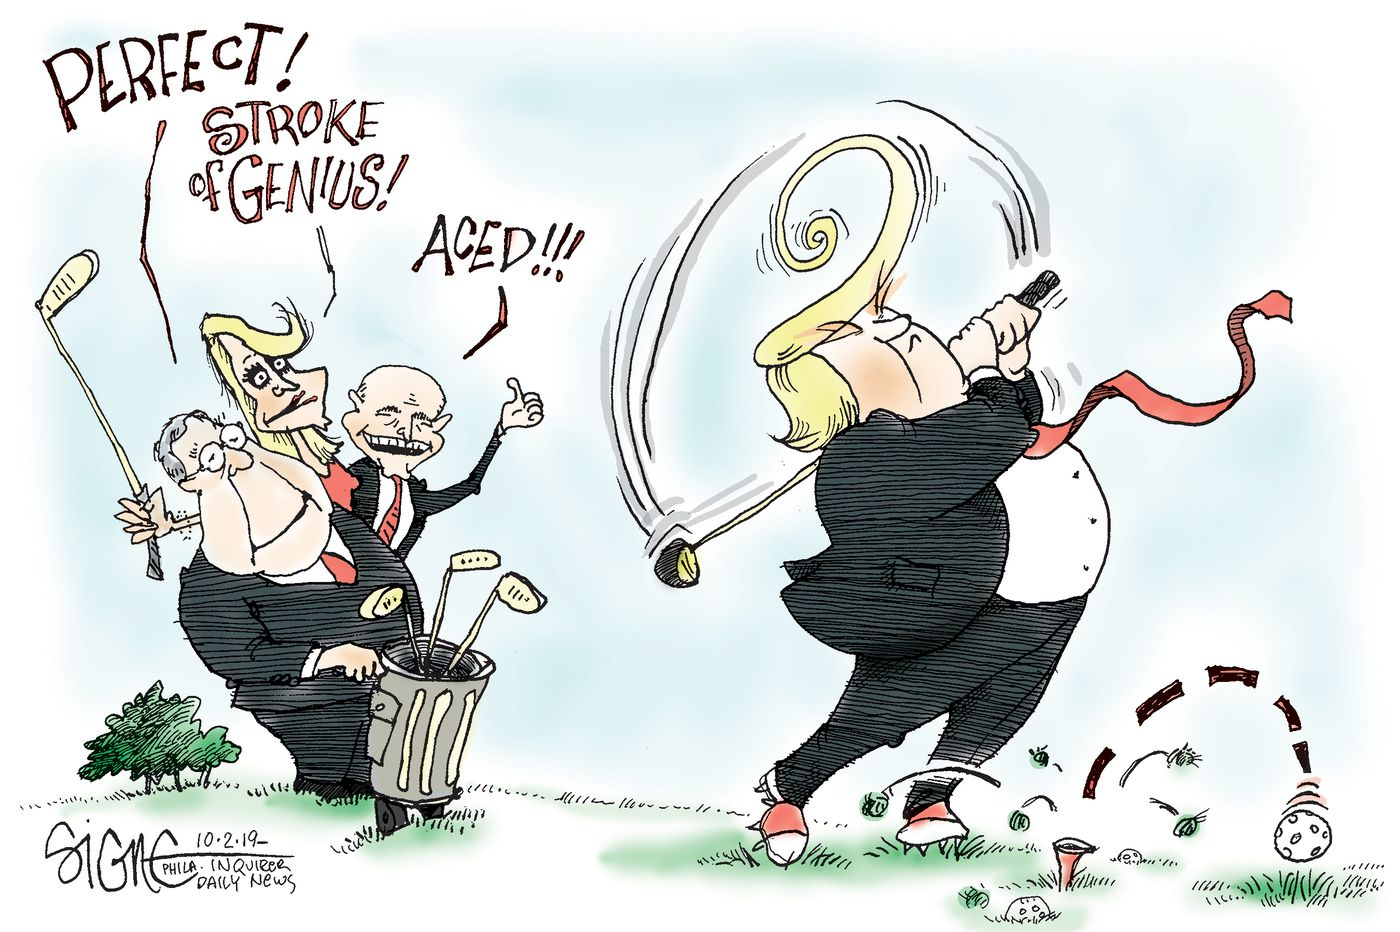 Political Cartoon: Trump's golf stroke of genius